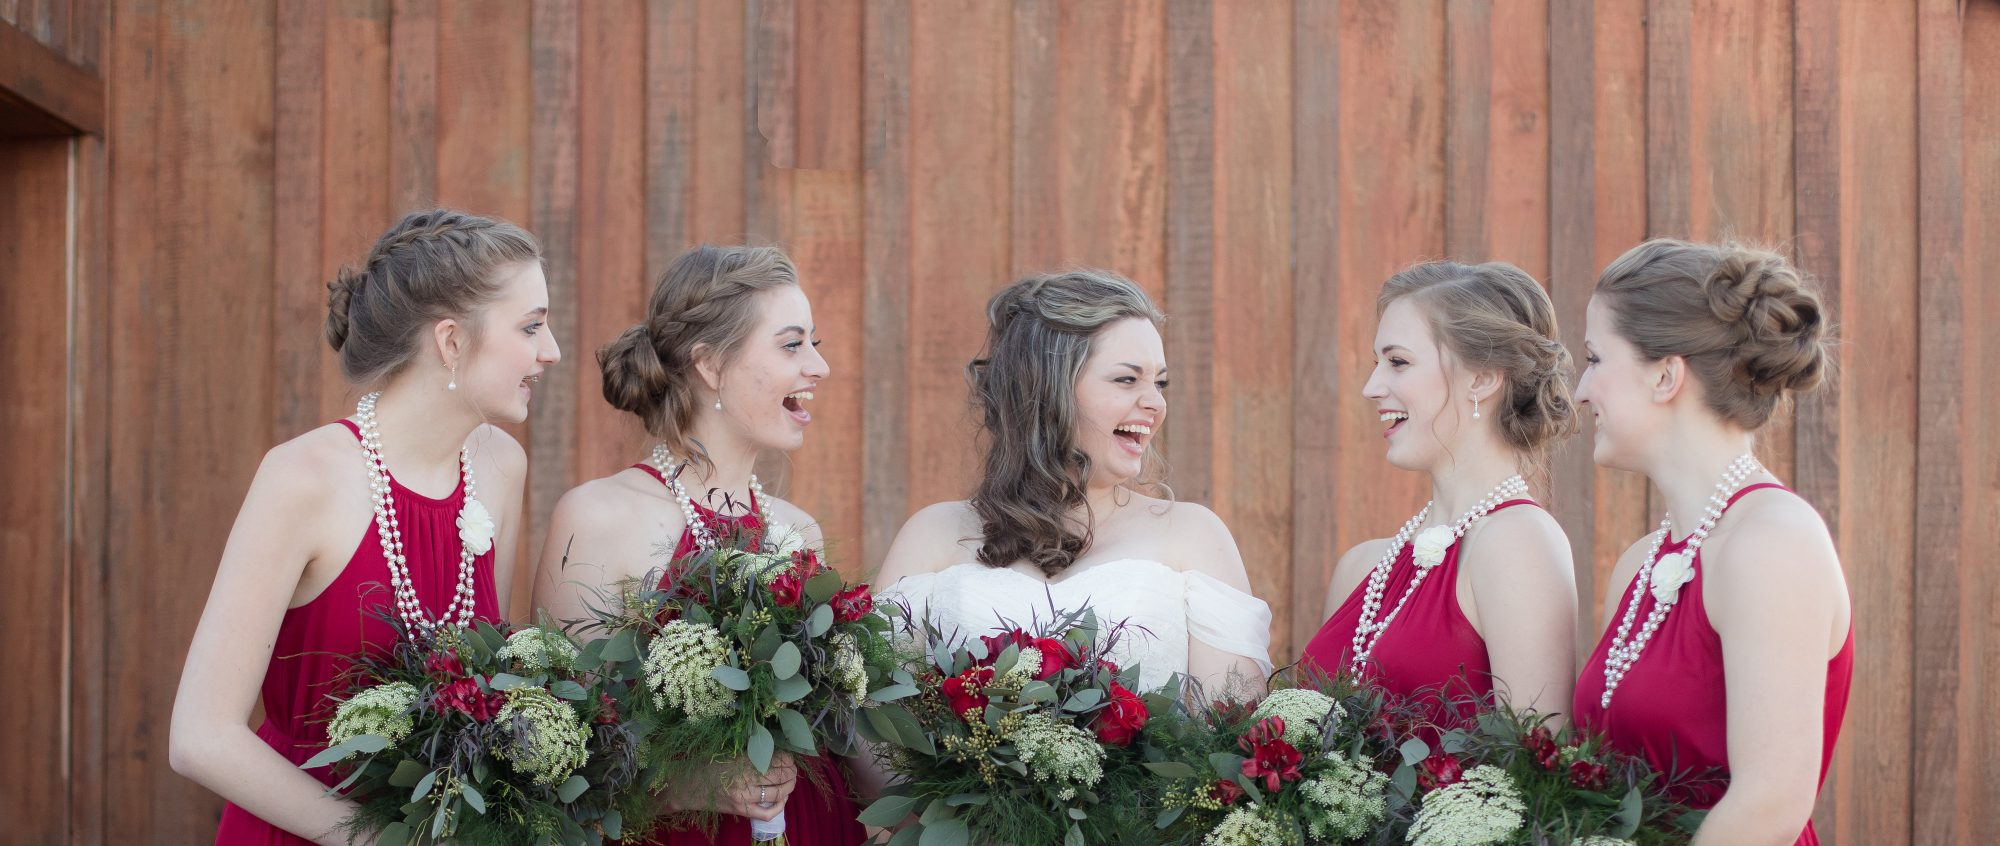 kentucky barn wedding and reception - bride and maids